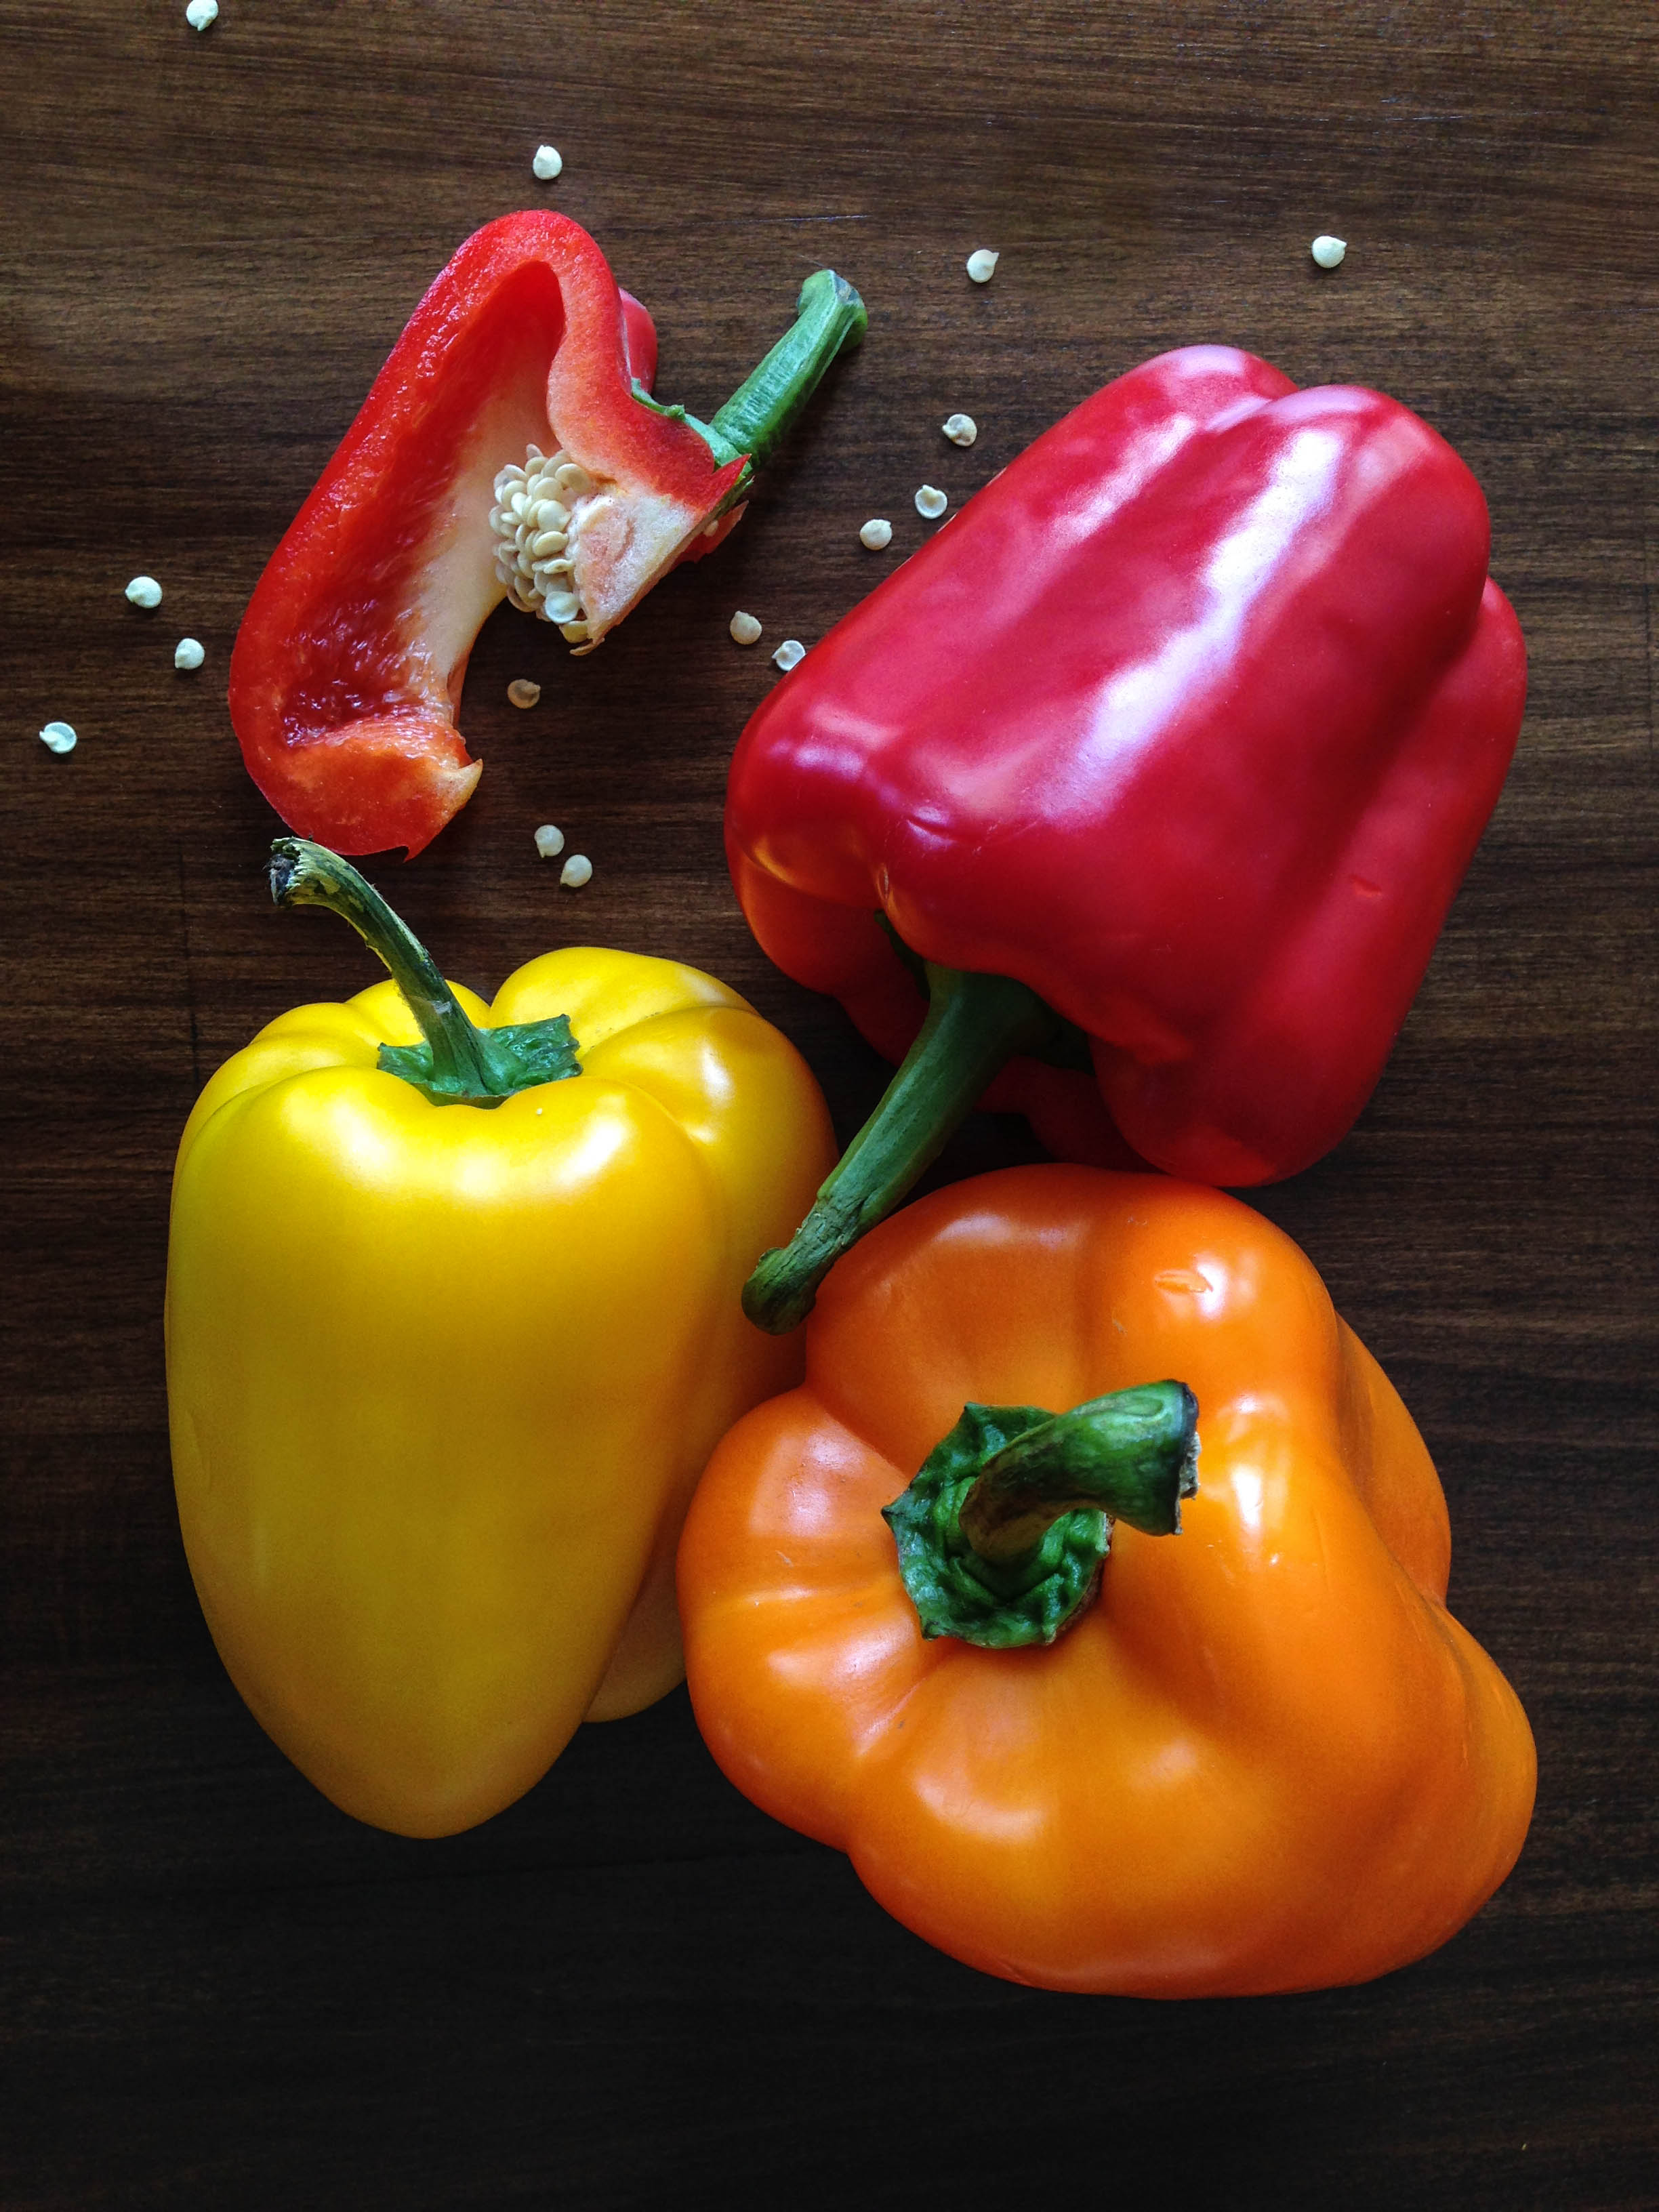 food-peppers-kitchen-yum.jpg